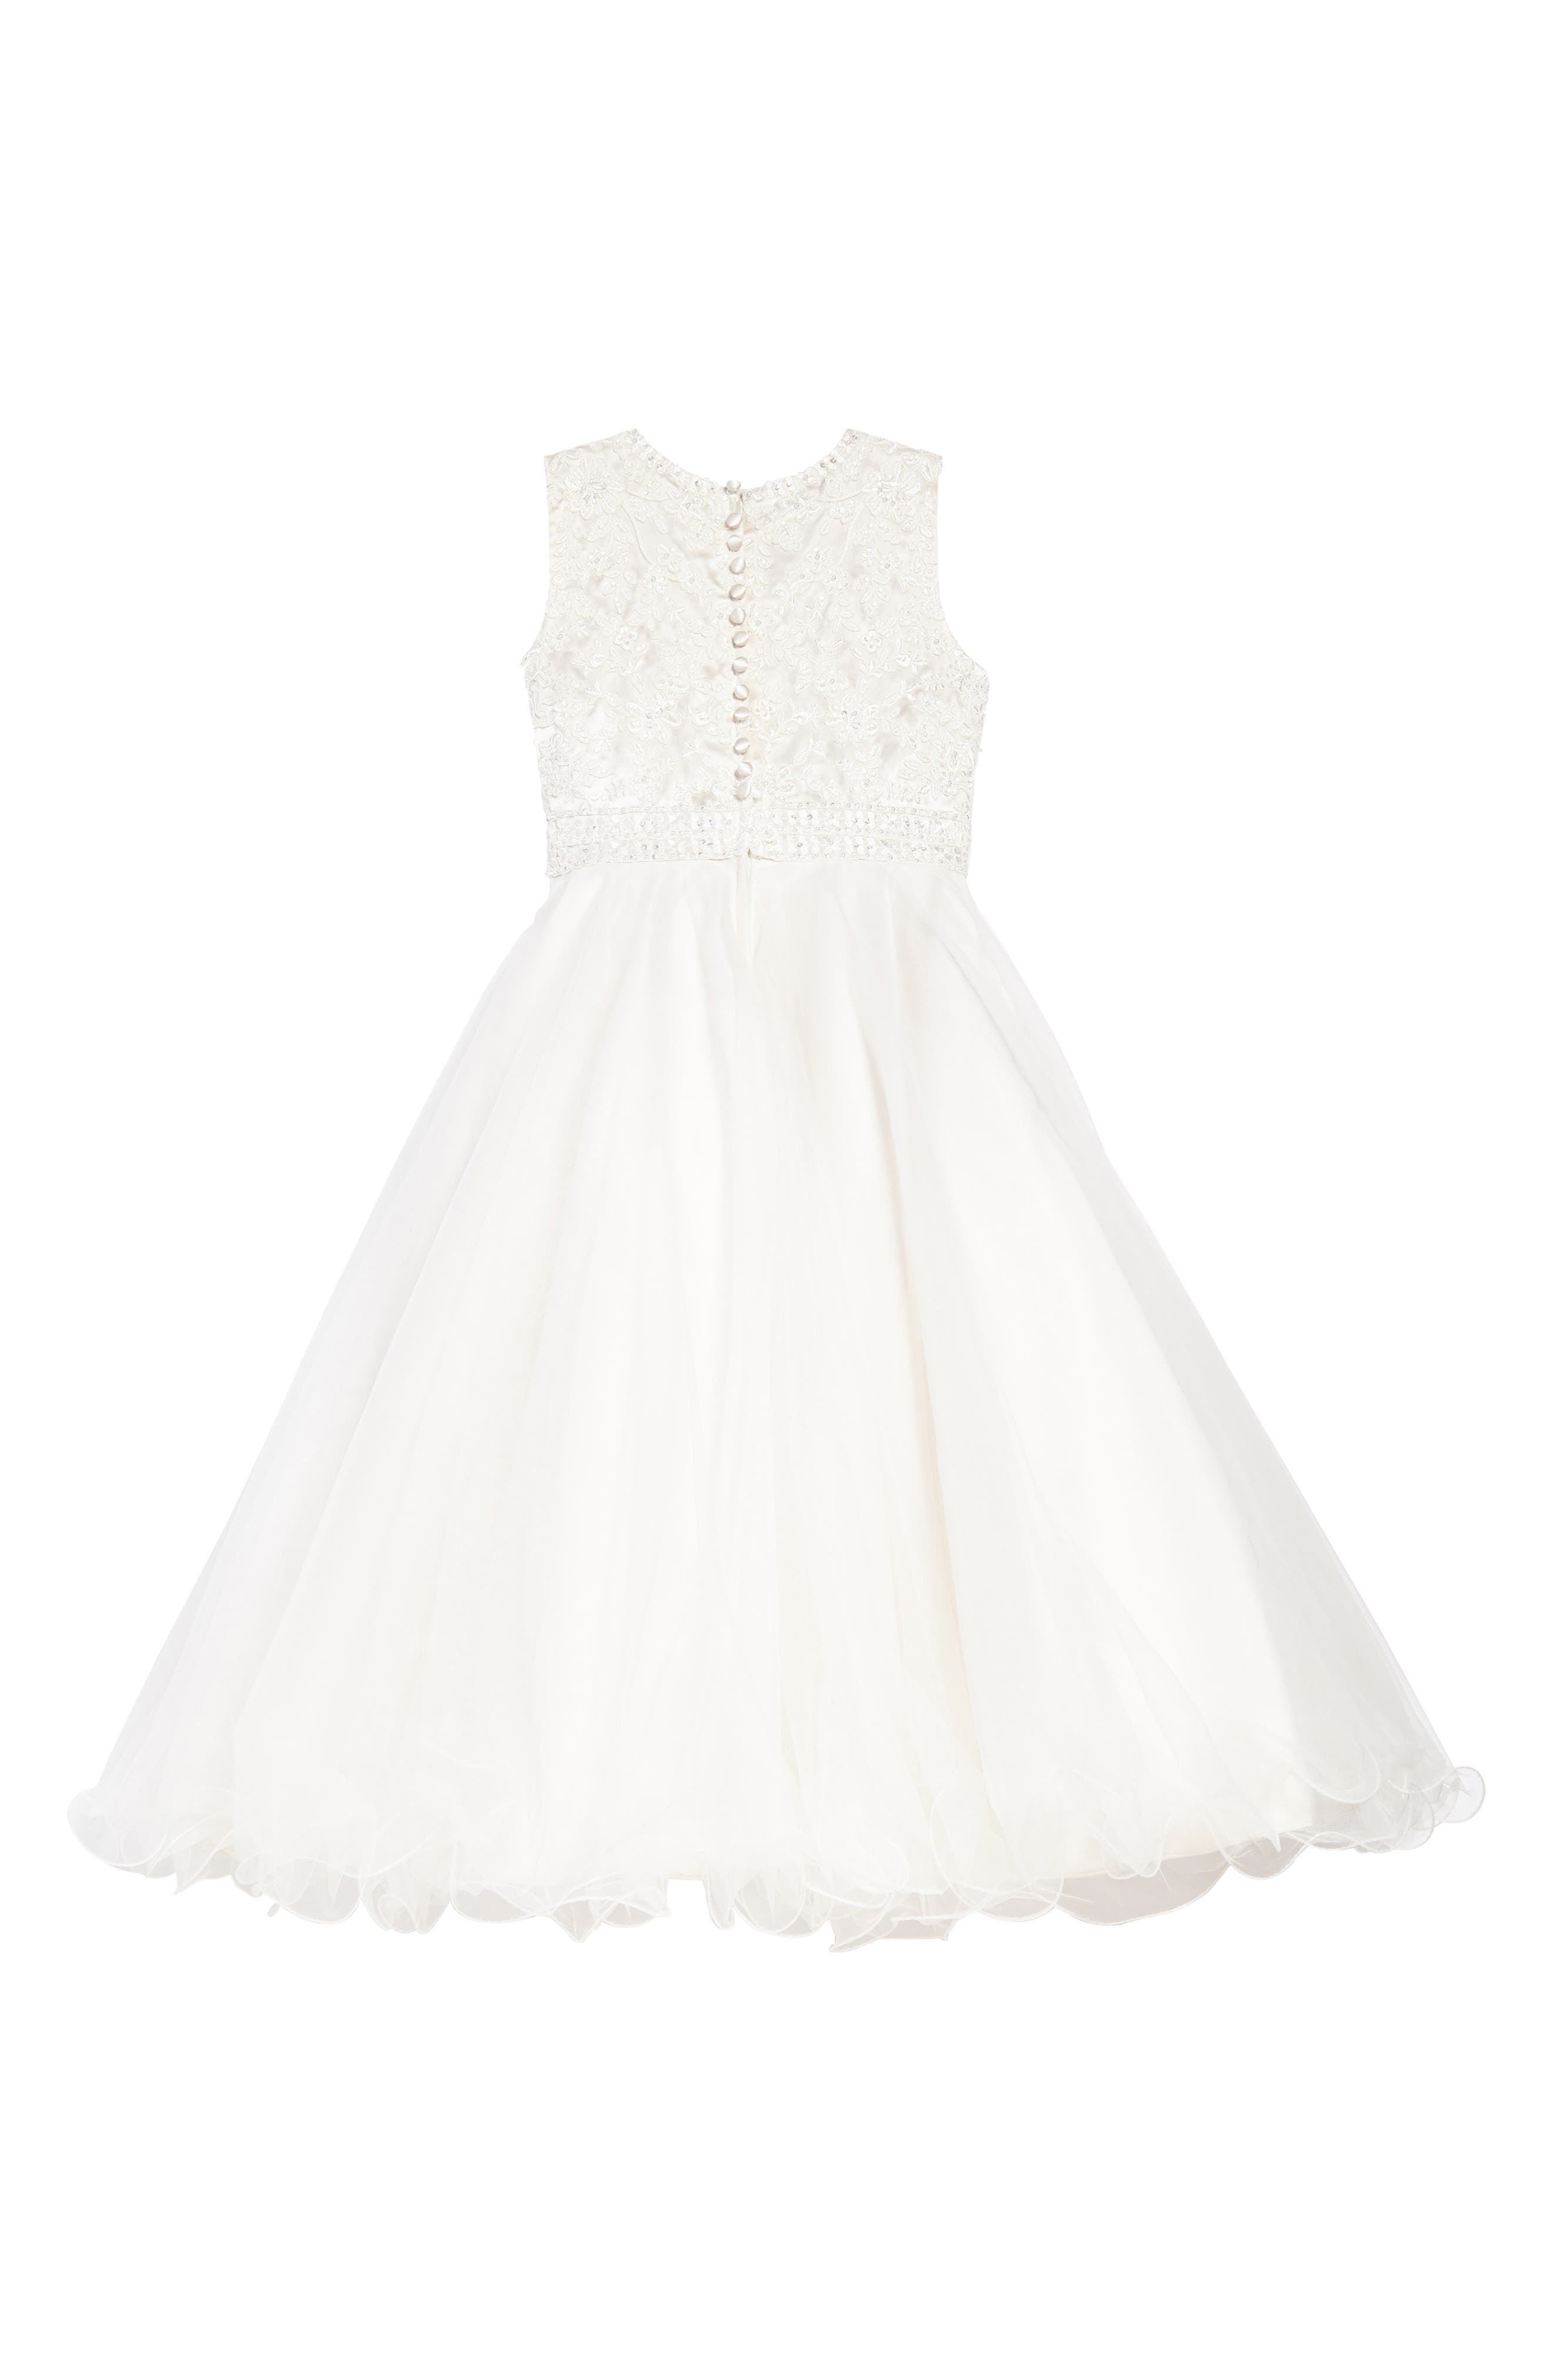 Lace & Tulle Dress,                             Alternate thumbnail 2, color,                             Ivory/ Gardenia